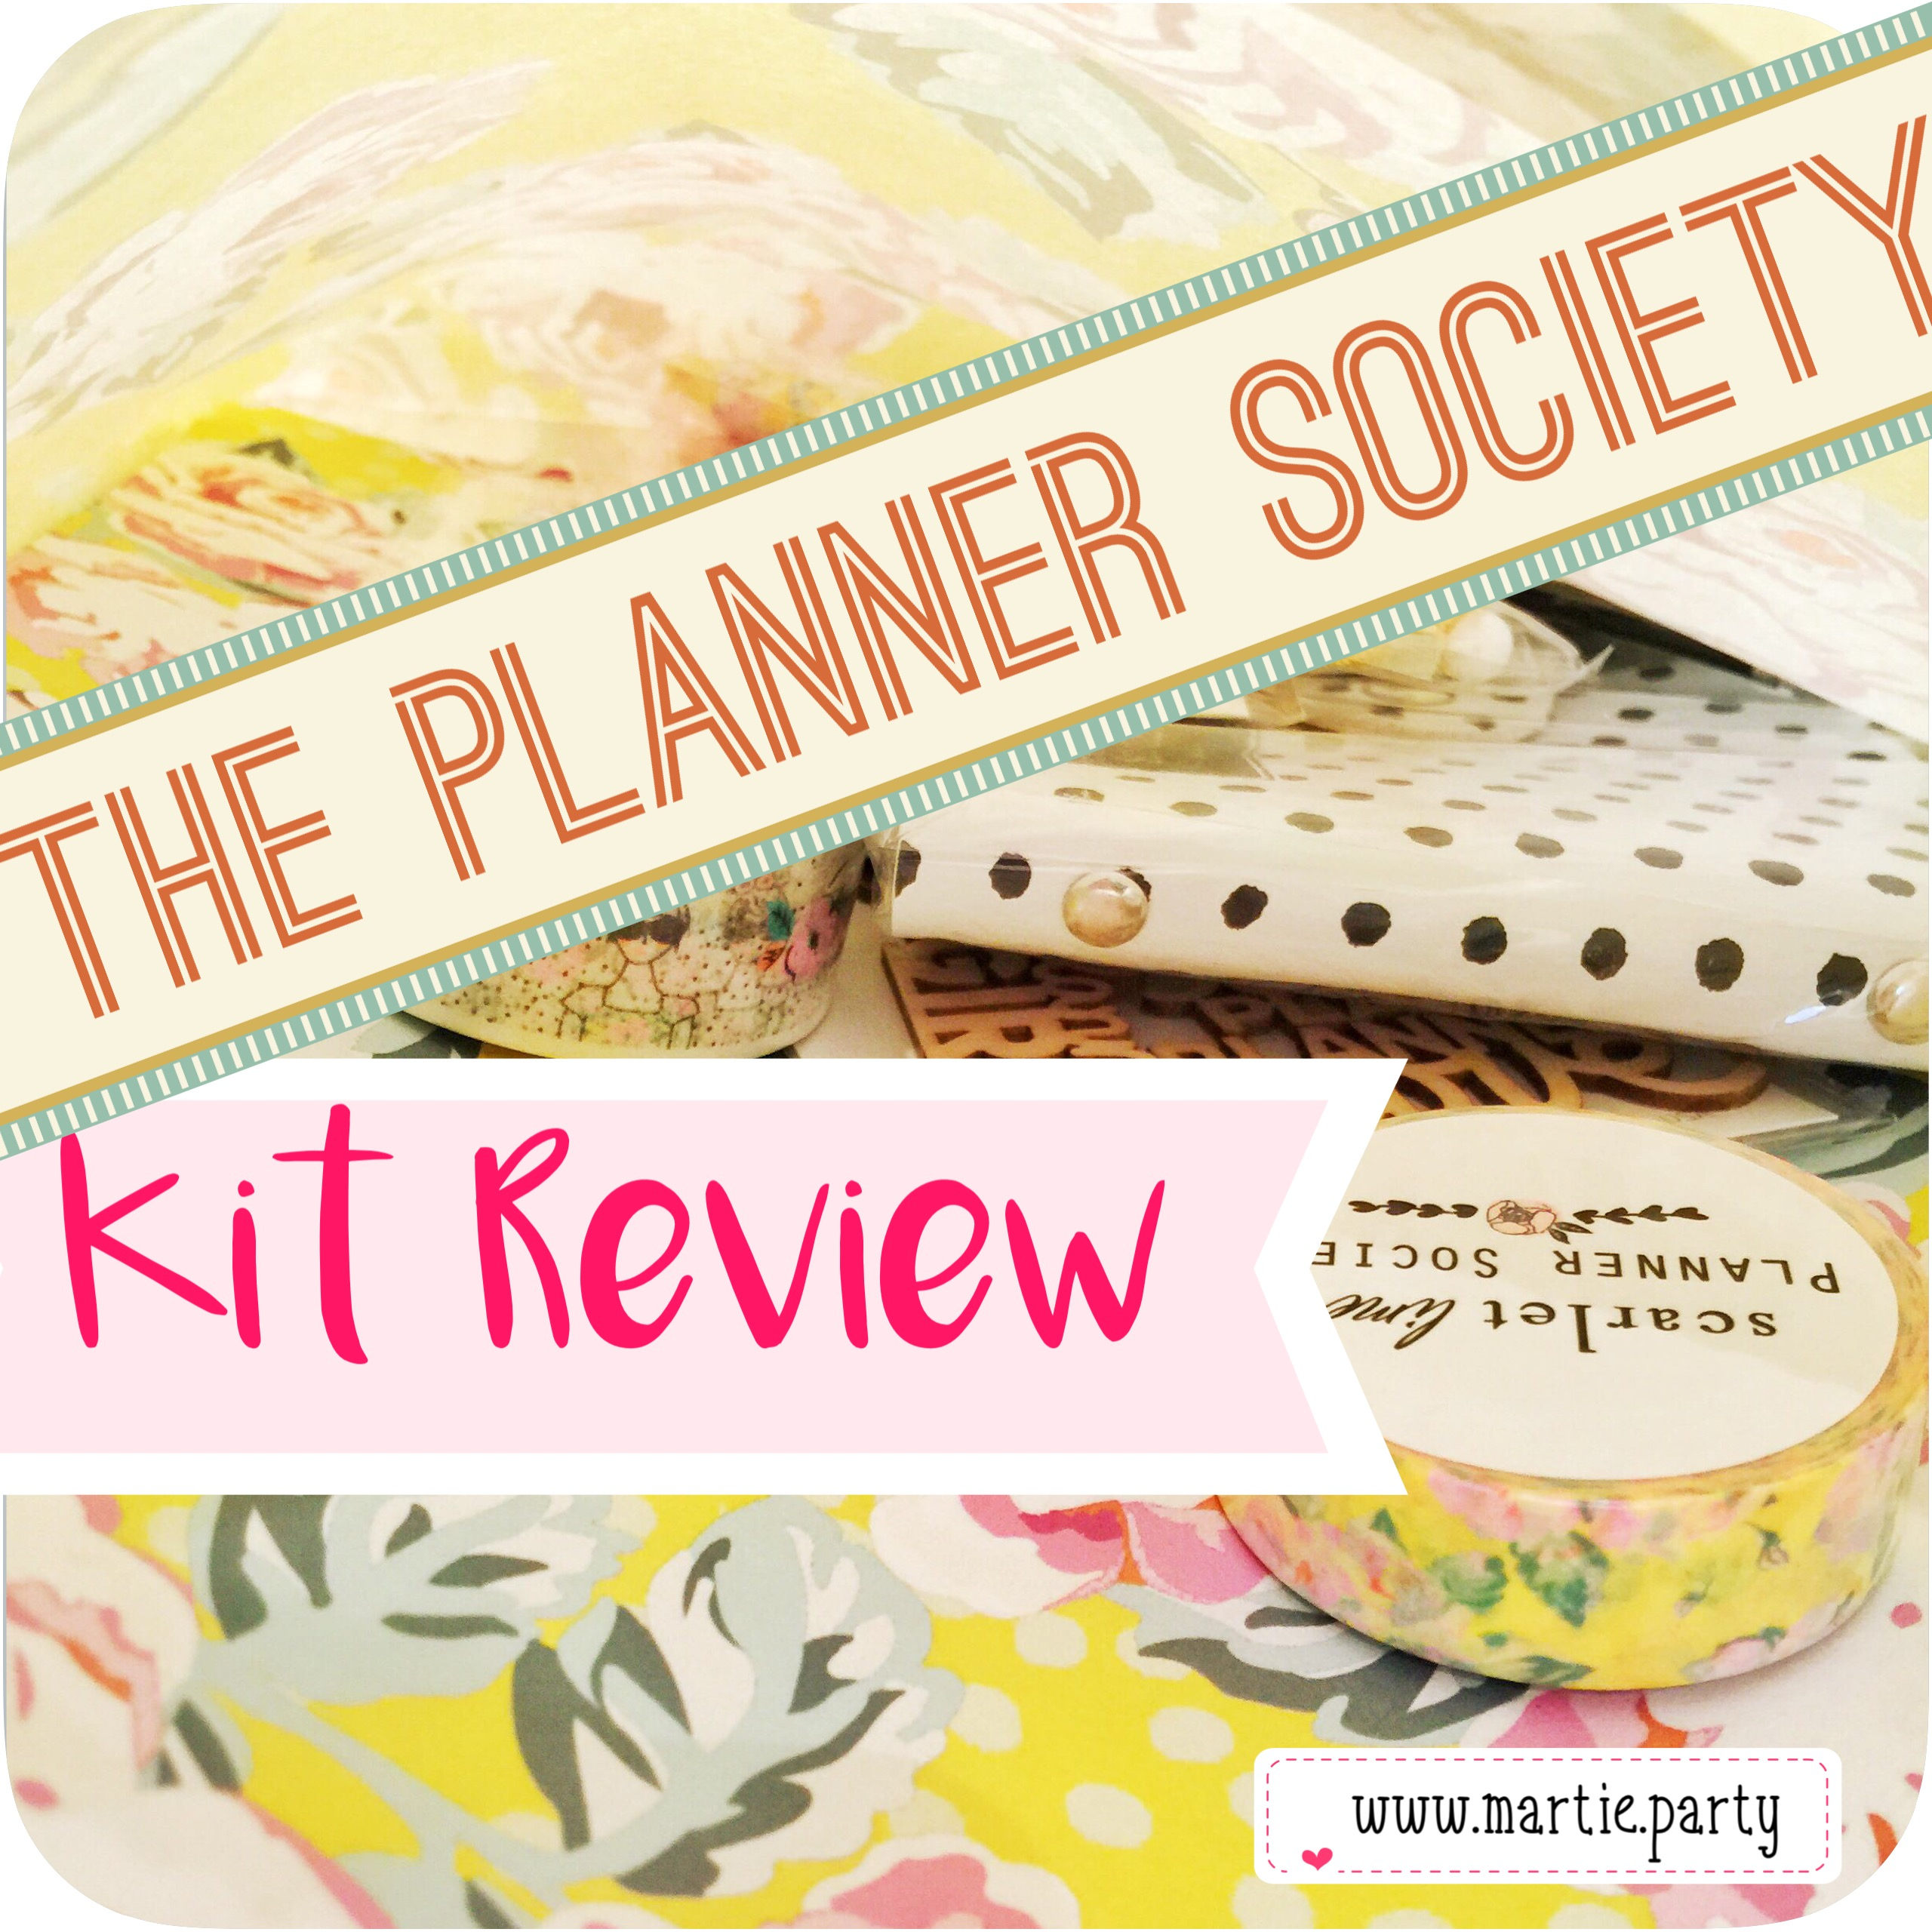 The Planner Society Kit Review header image.